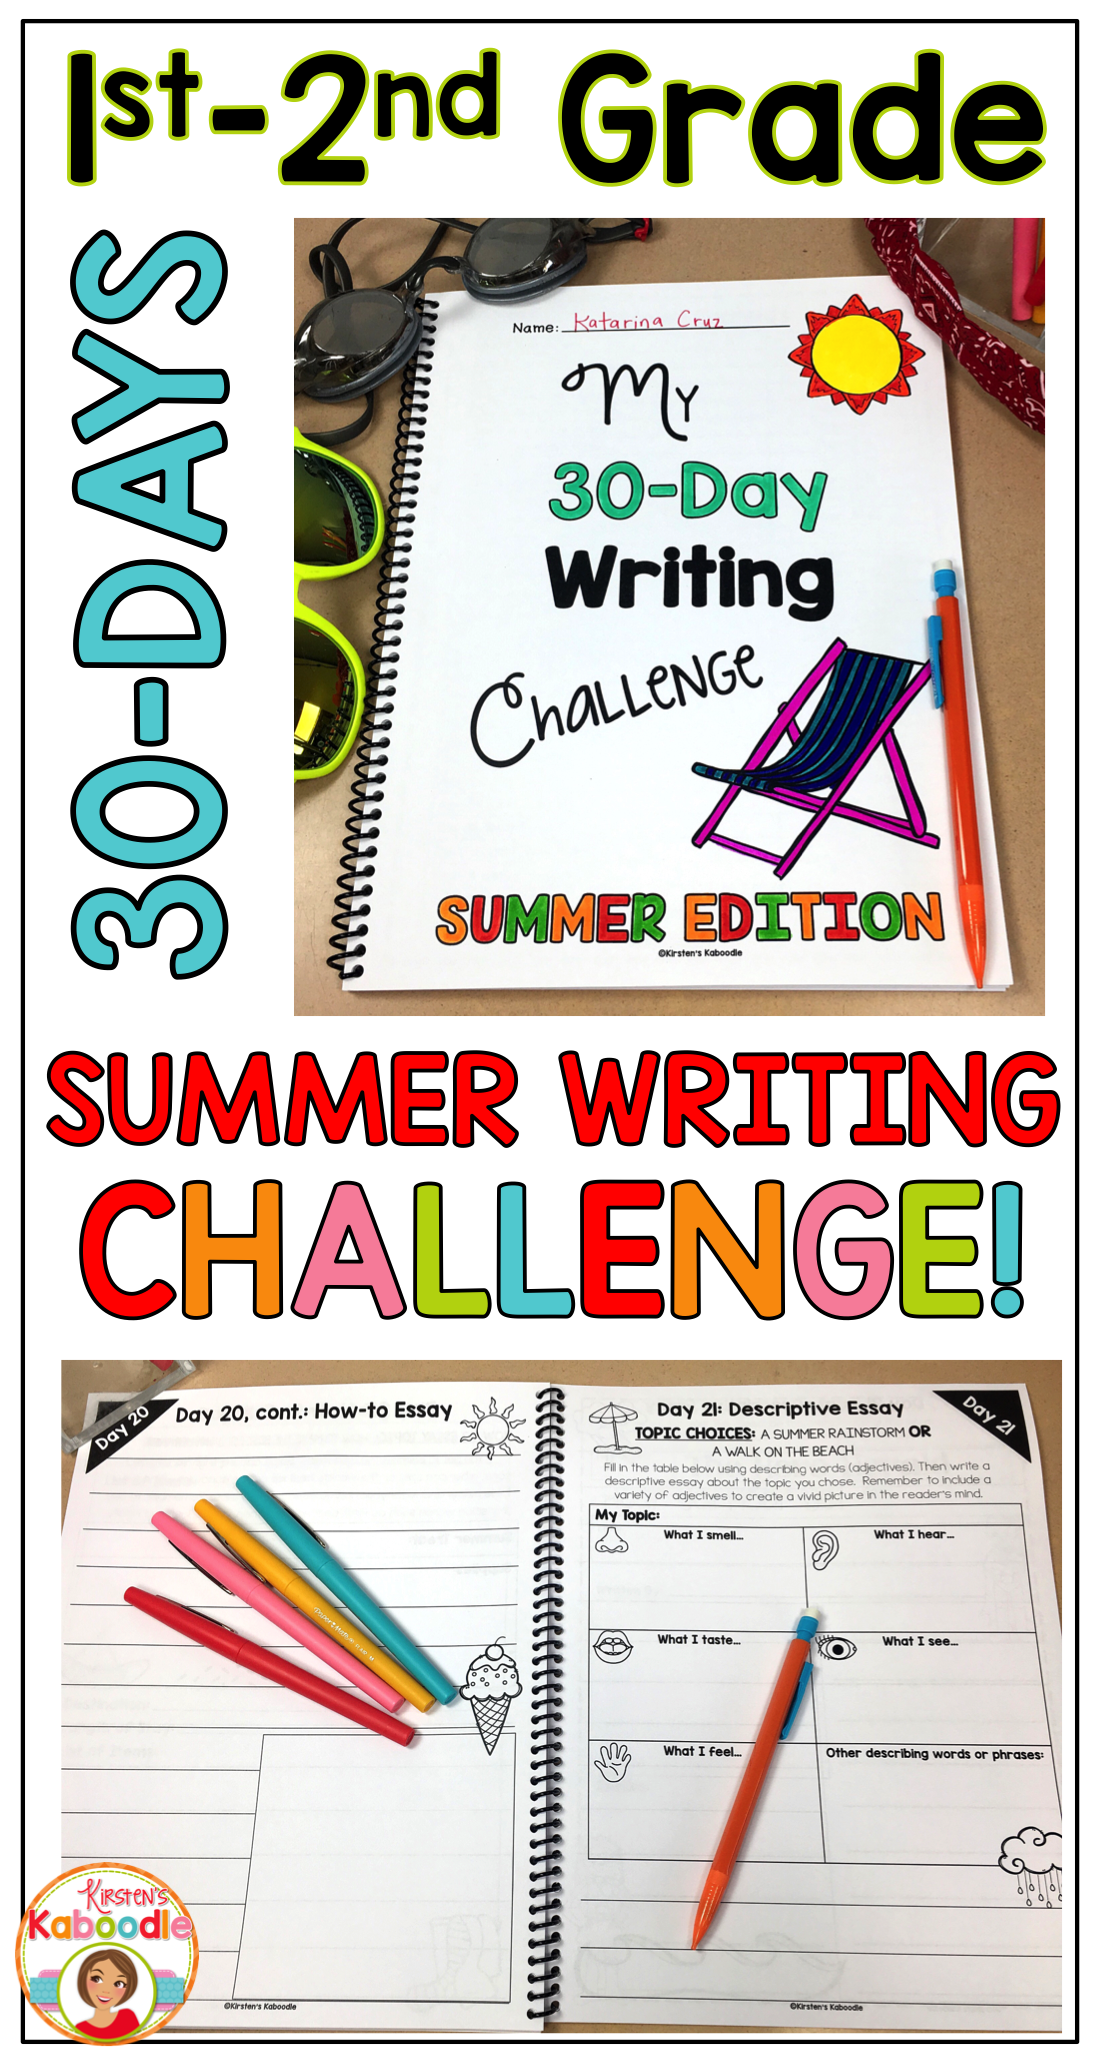 Best English Essay Are You A Teacher Who Wants To Give Your Students A Meaningful And Fun  Summer Writing Challenge This Day Summer Writing Challenge Was Created  For St  How Do I Write A Thesis Statement For An Essay also Process Essay Thesis Summer Writing Challenge  Days Of Writing For St And Nd Grade  Writing Essay Papers